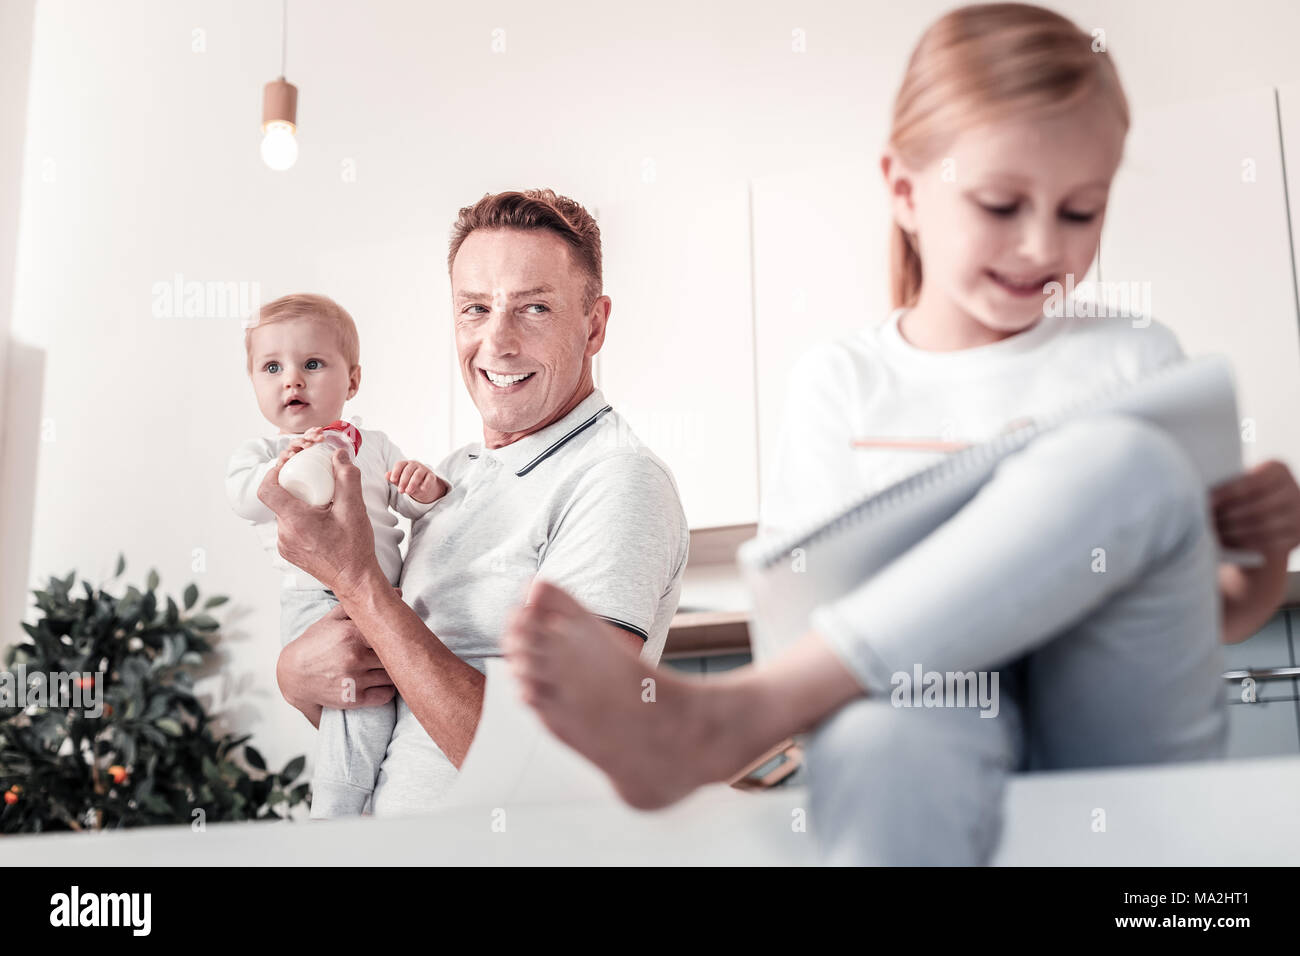 Happy male person looking at his kid - Stock Image